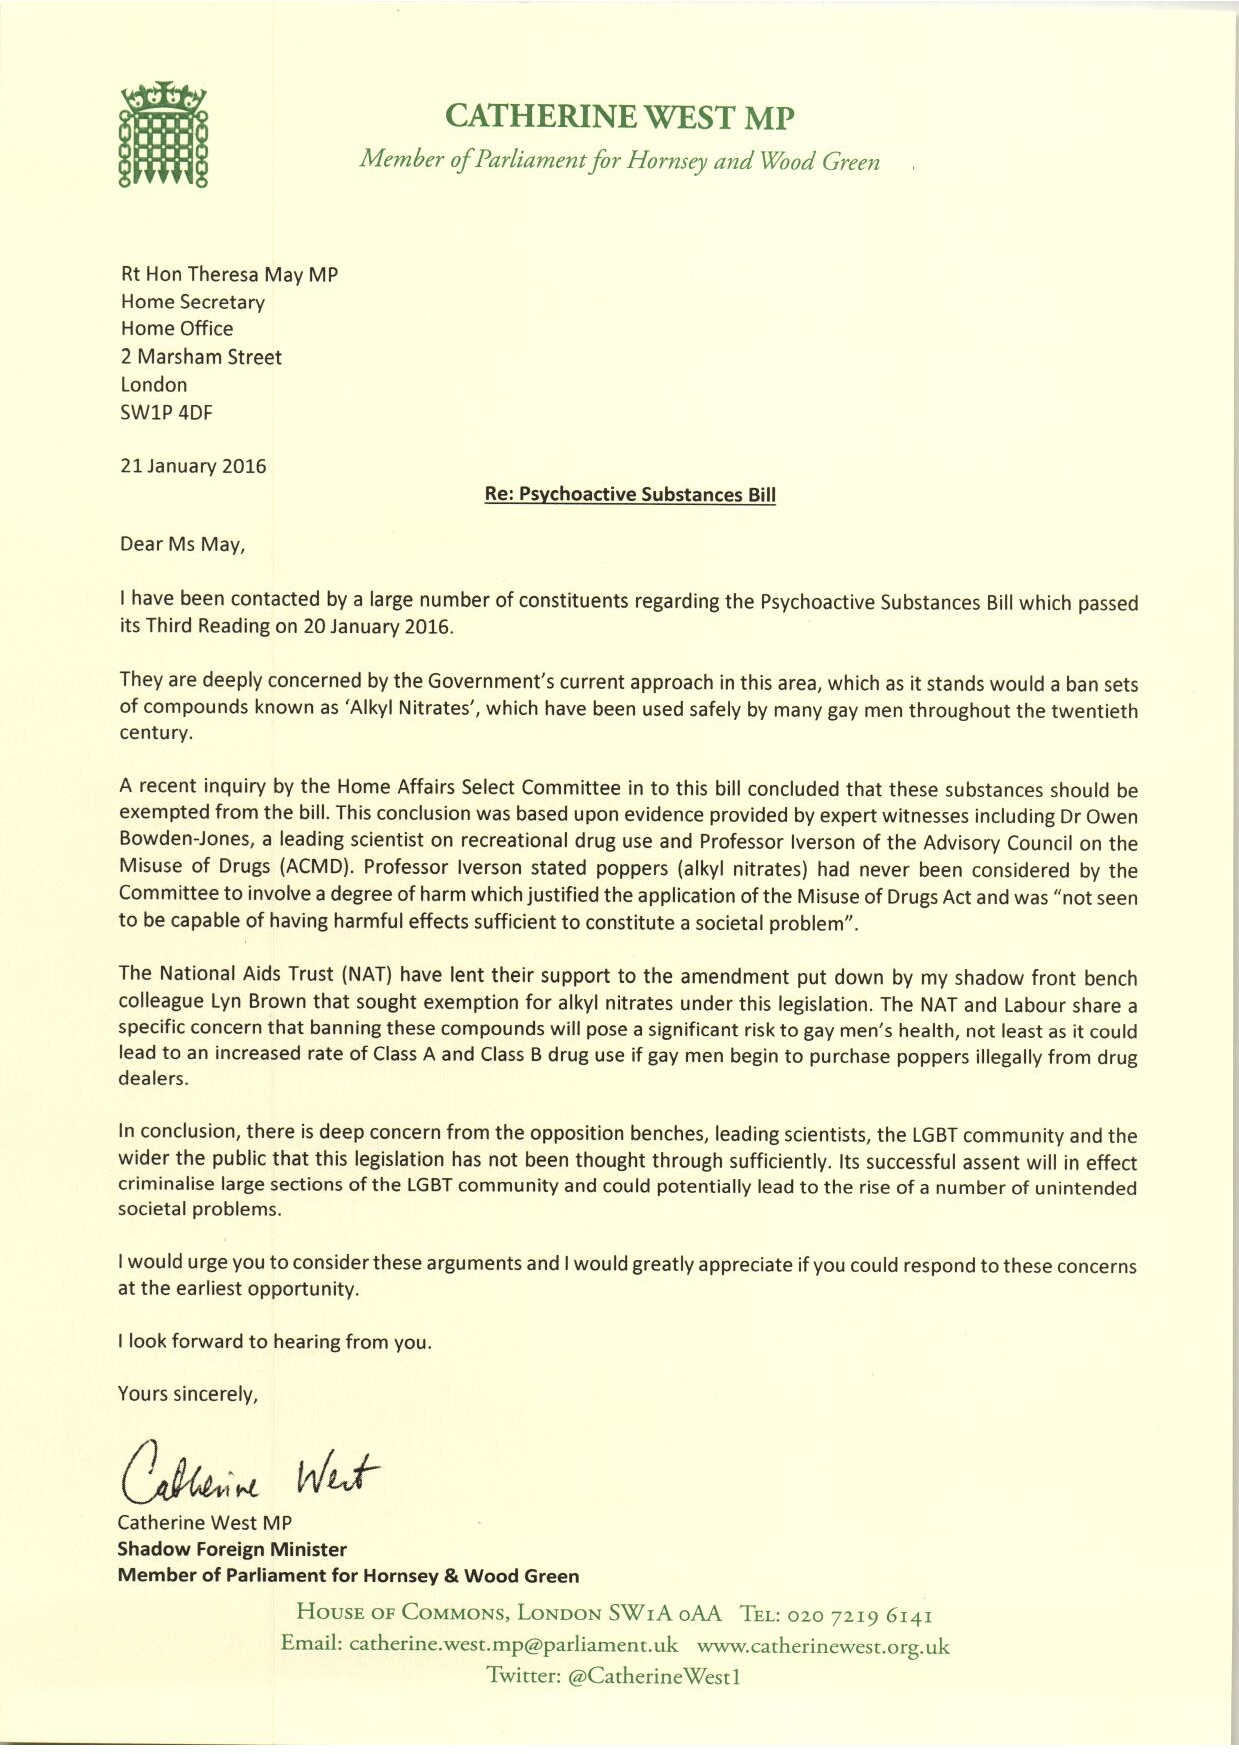 Letter_to_Theresa_May_on_Psychoactive_Substances_Bill_21.01.16_copy.jpg